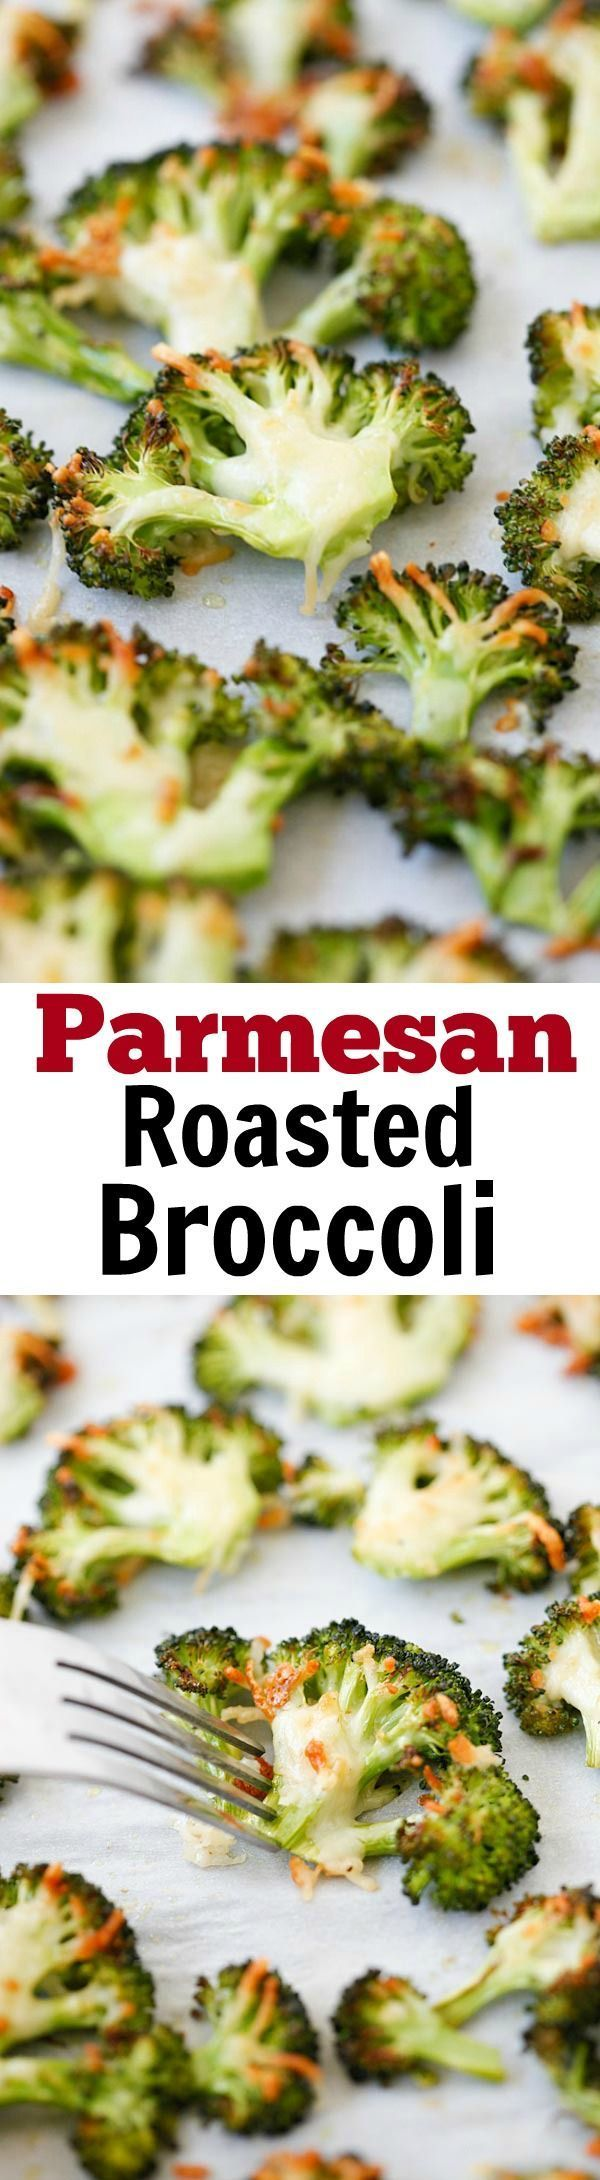 Parmesan Roasted Broccoli – easy delicious roasted broccoli recipe, with Parmesan cheese. 5 mins prep and 20 mins to table.